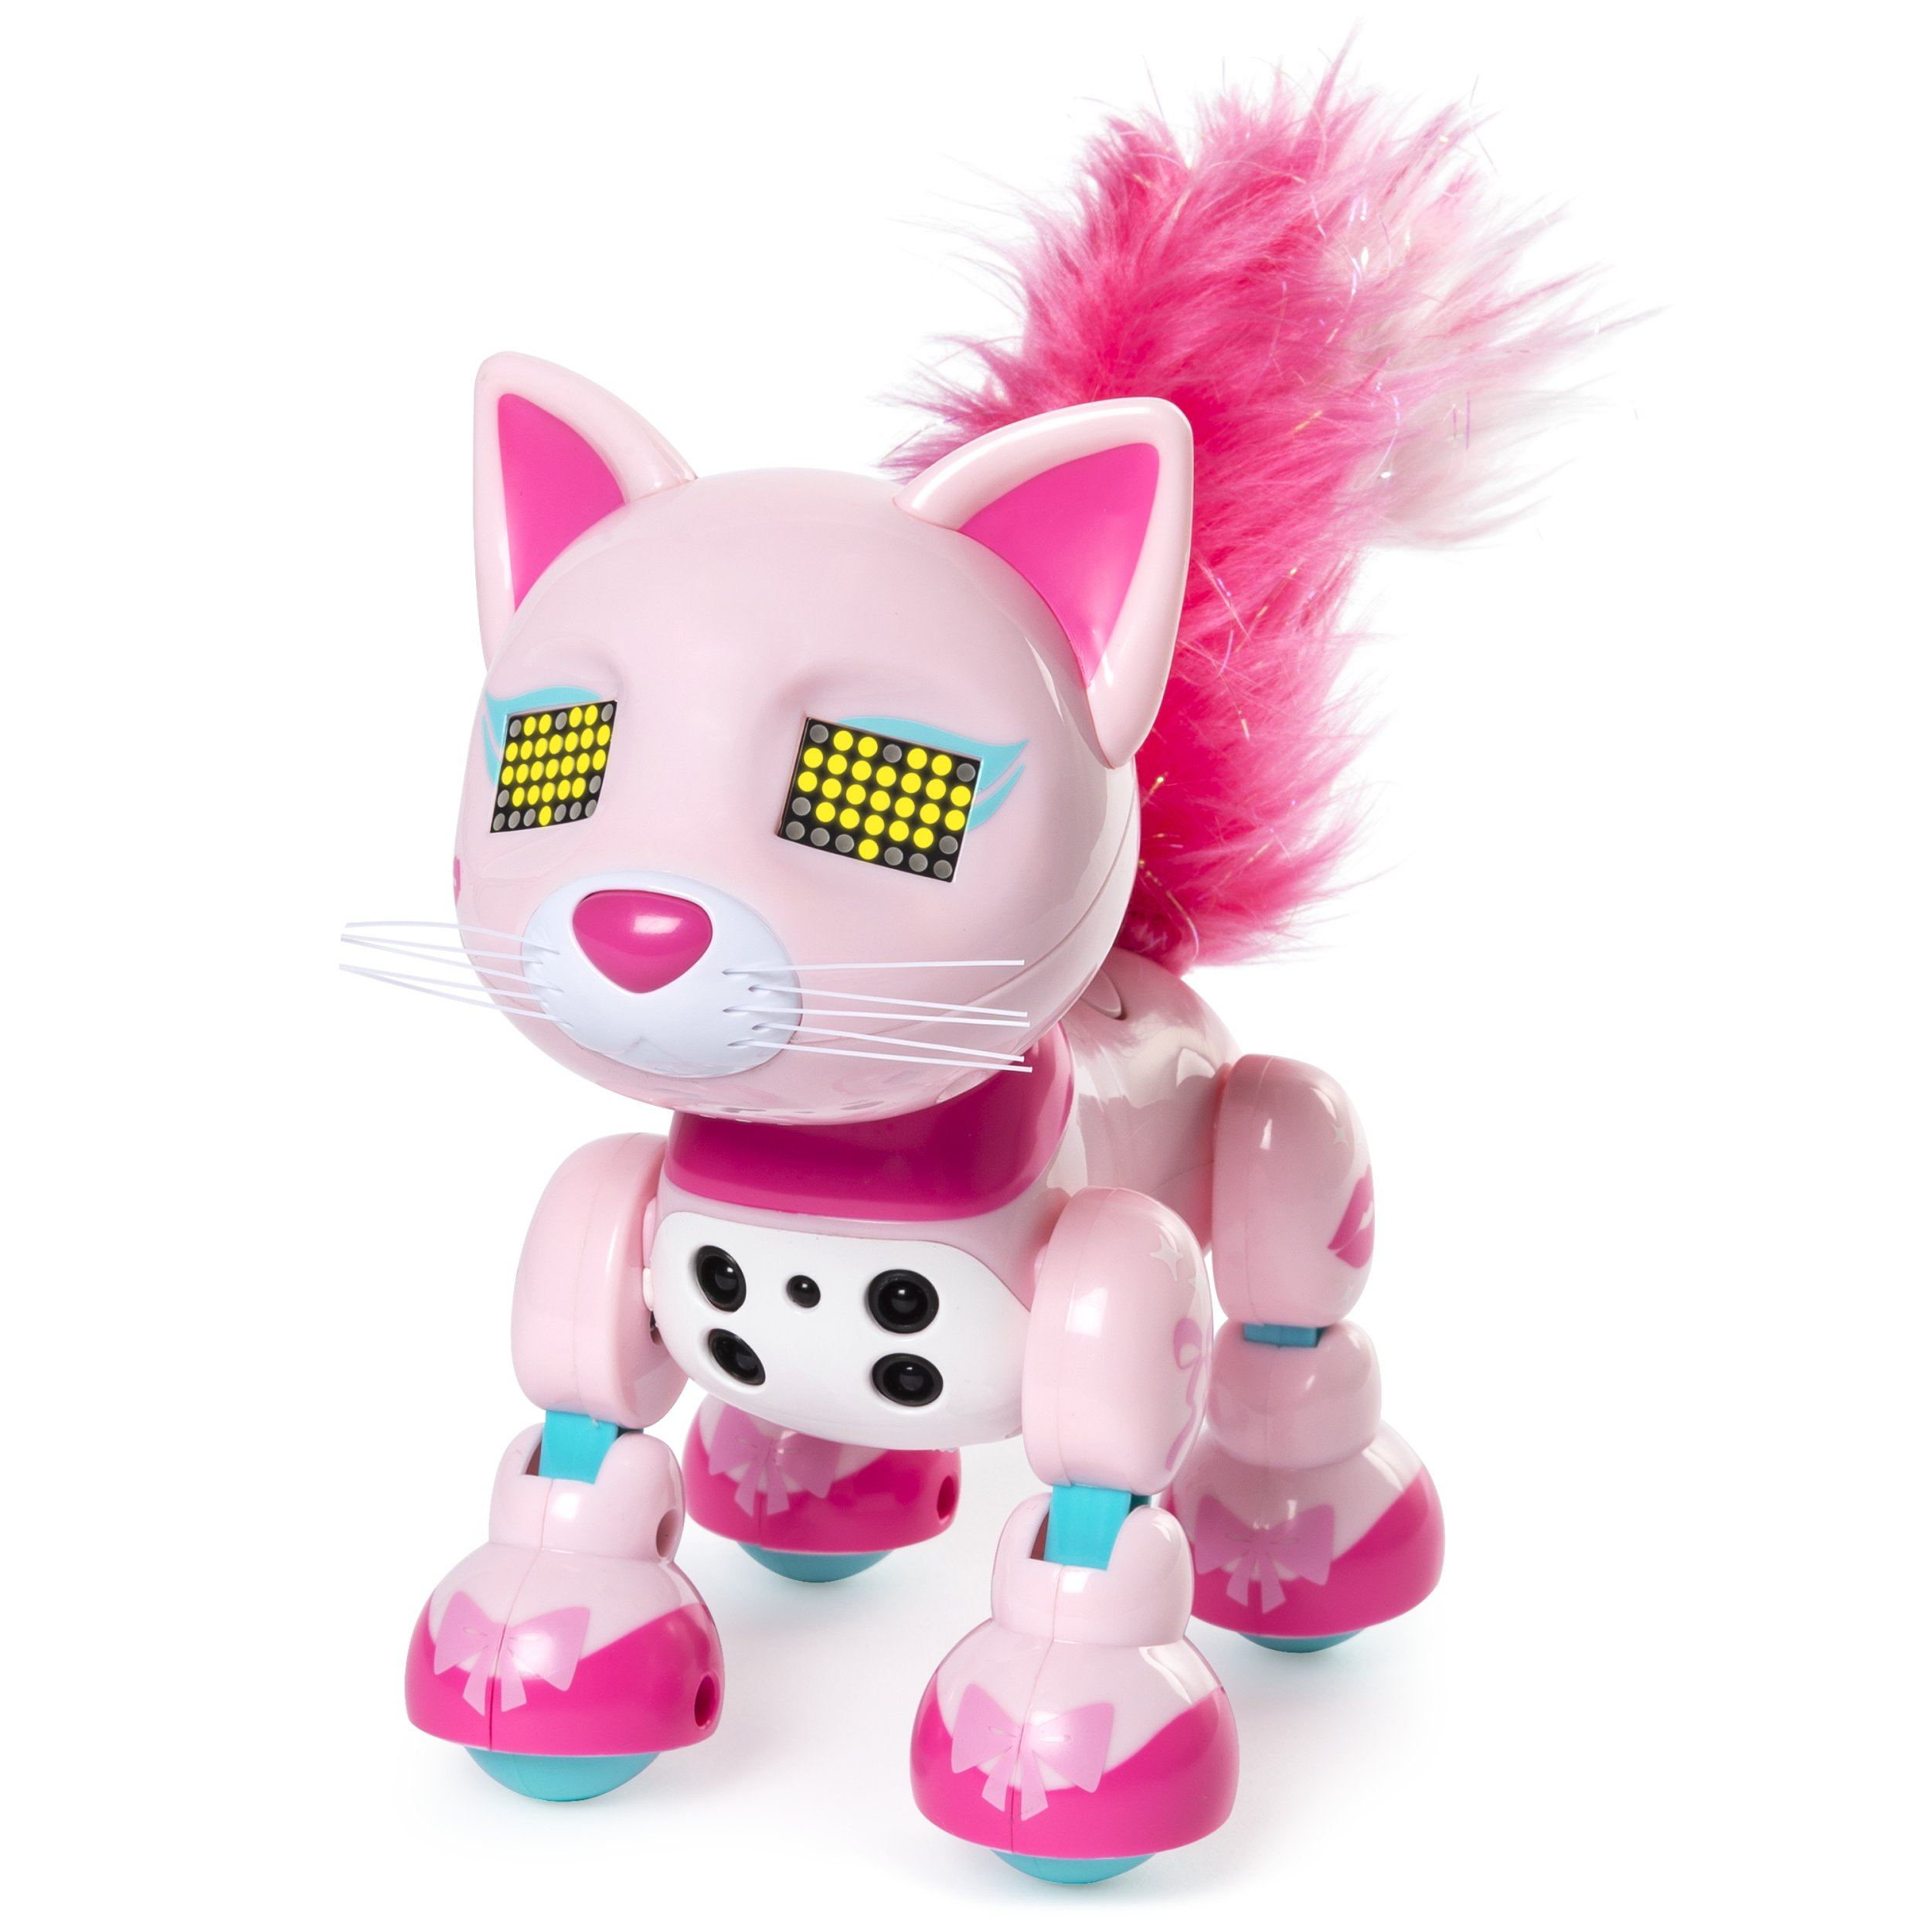 Zoomer Meowzies, Chic, Interactive Kitten with Lights, Sounds and Sensors by Zoomer (Image #3)